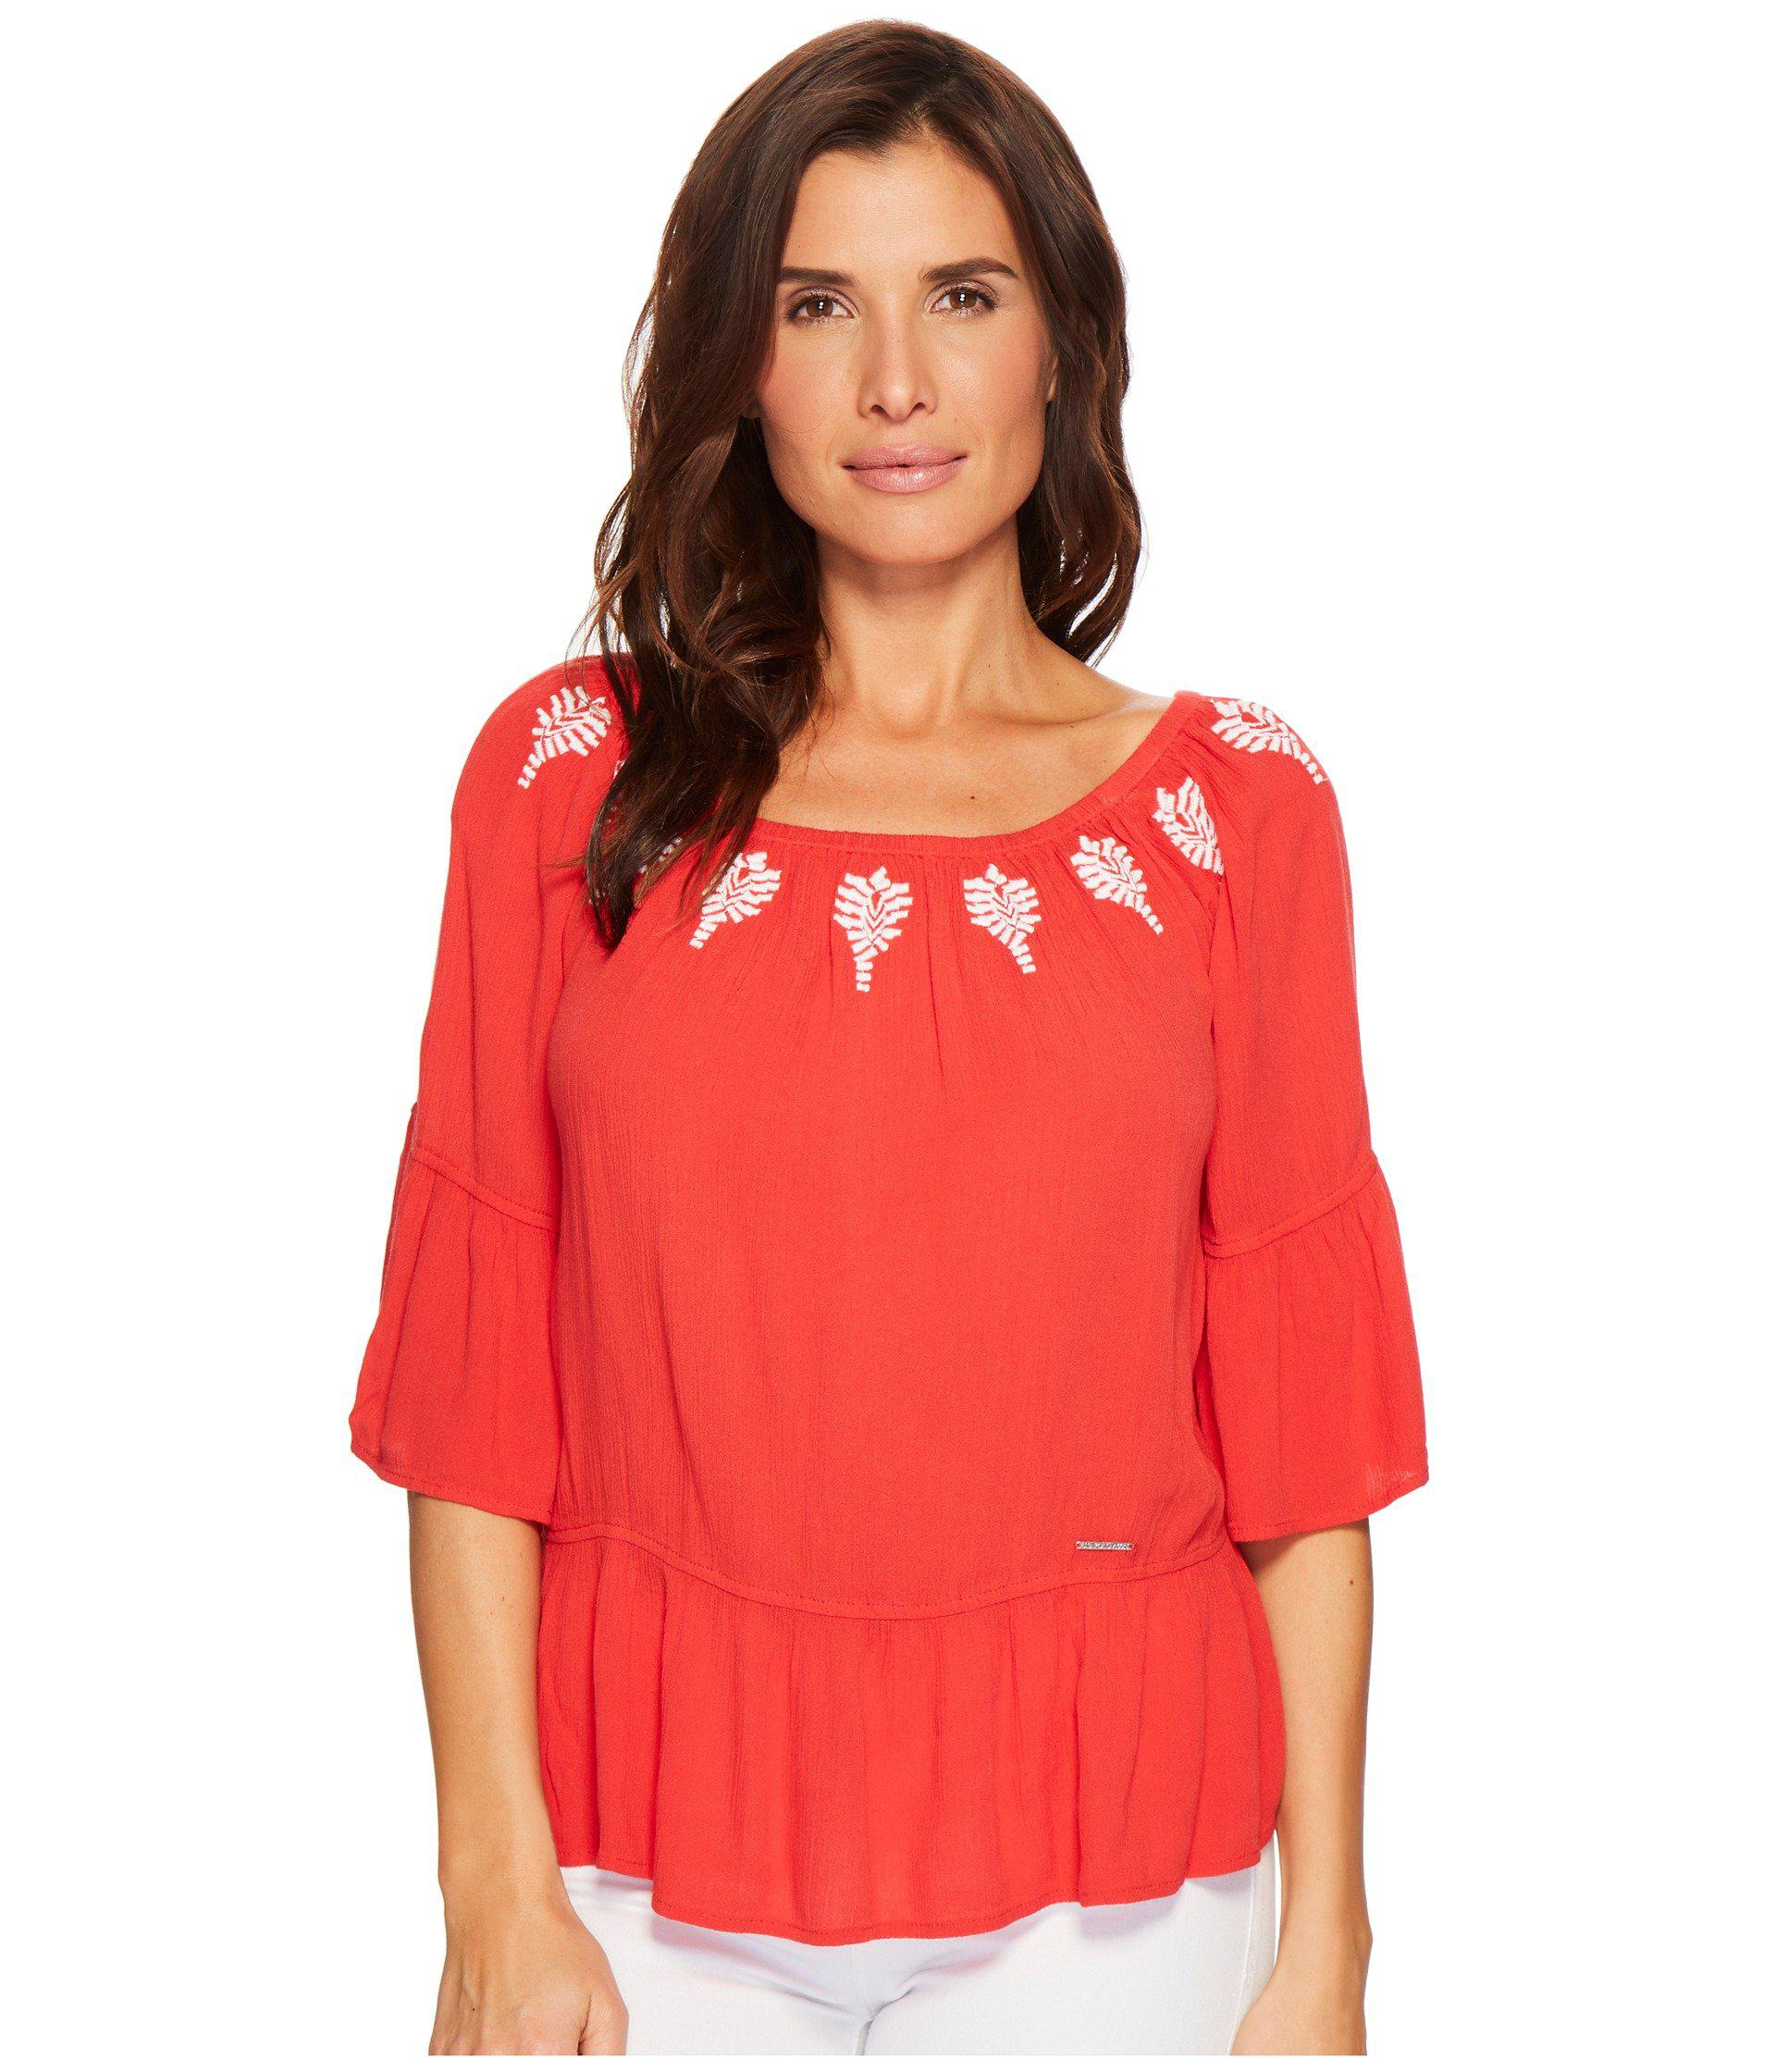 869863811e907c Lyst - U.S. POLO ASSN. Elbow Peasant Blouse in Red